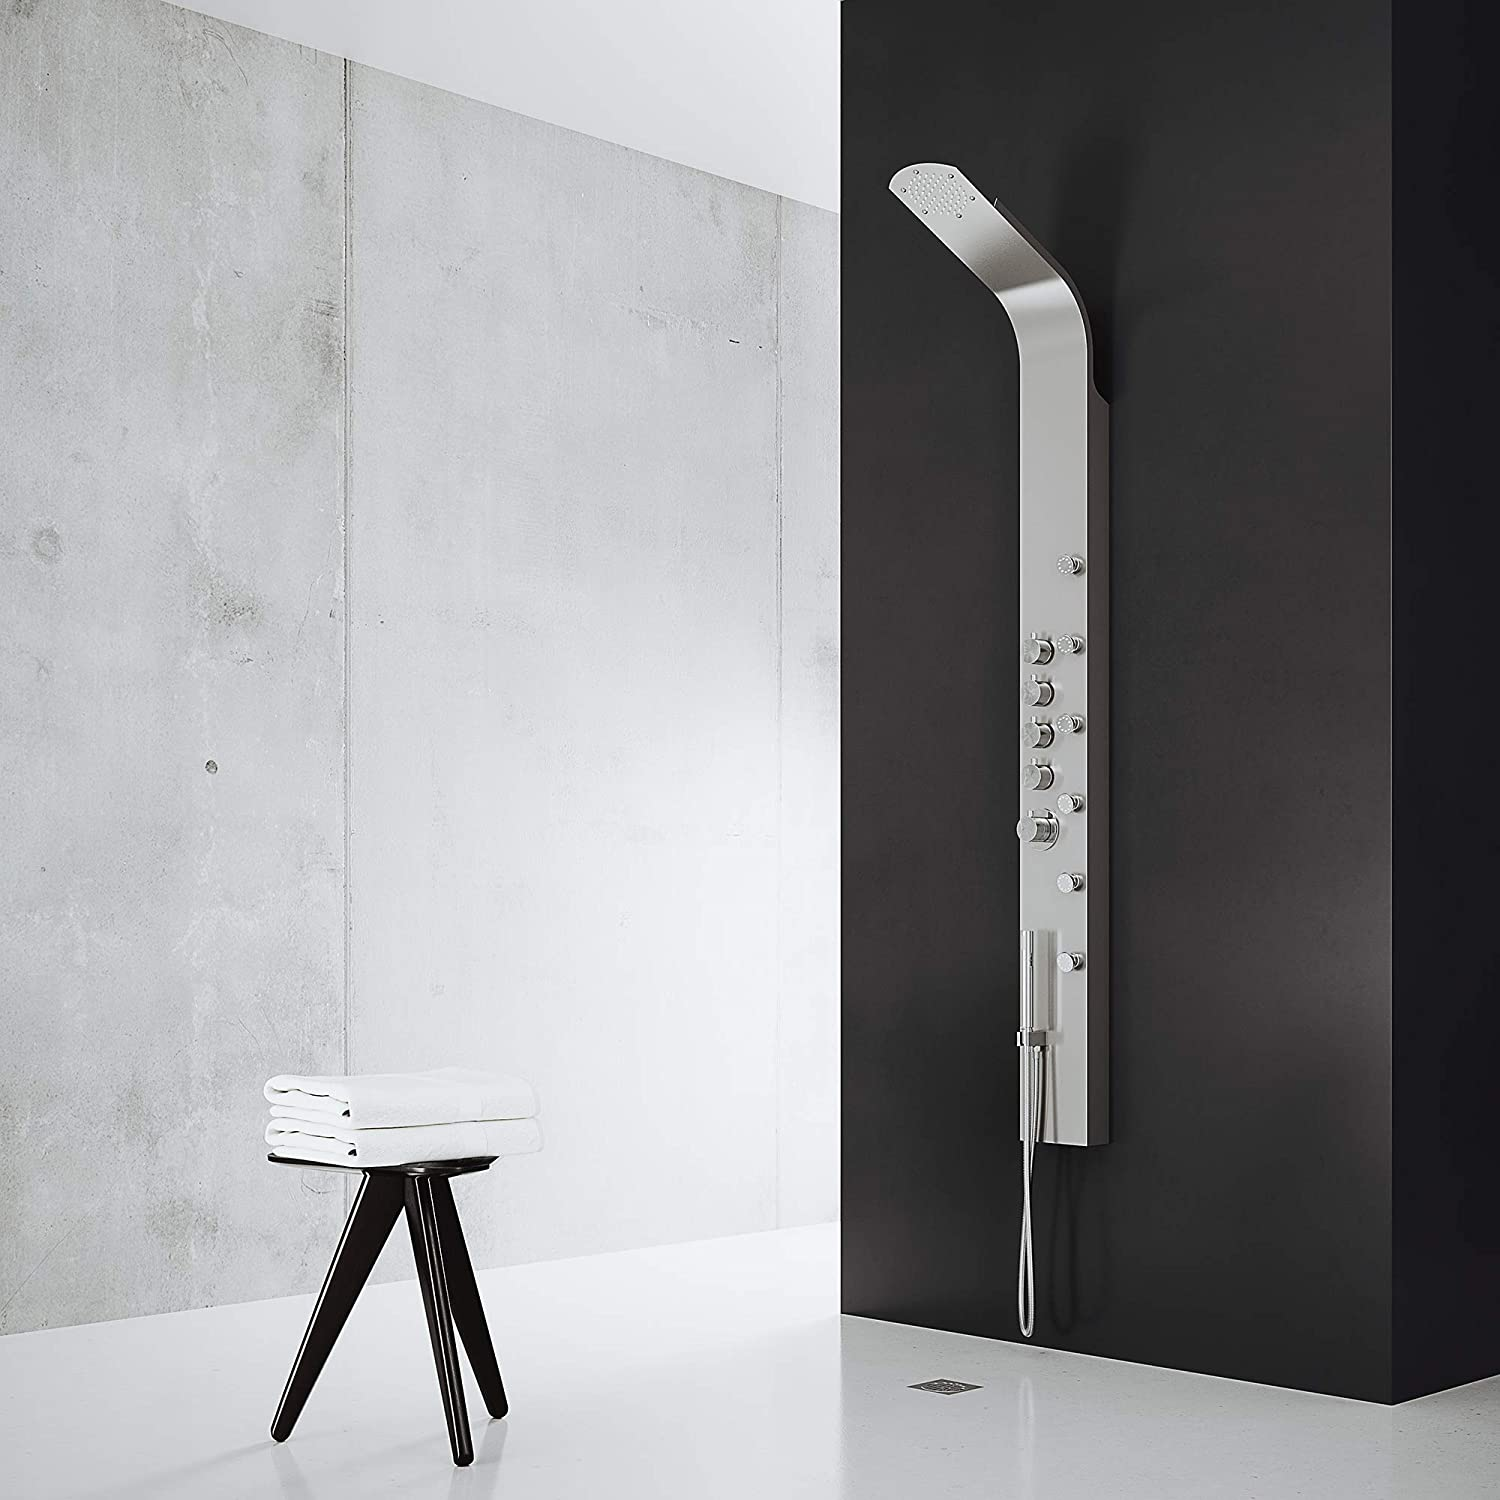 VIGO Brielle Rain Waterfall Shower Panel With Jets And Hand Shower - Shower Wall Surrounds - Amazon.com